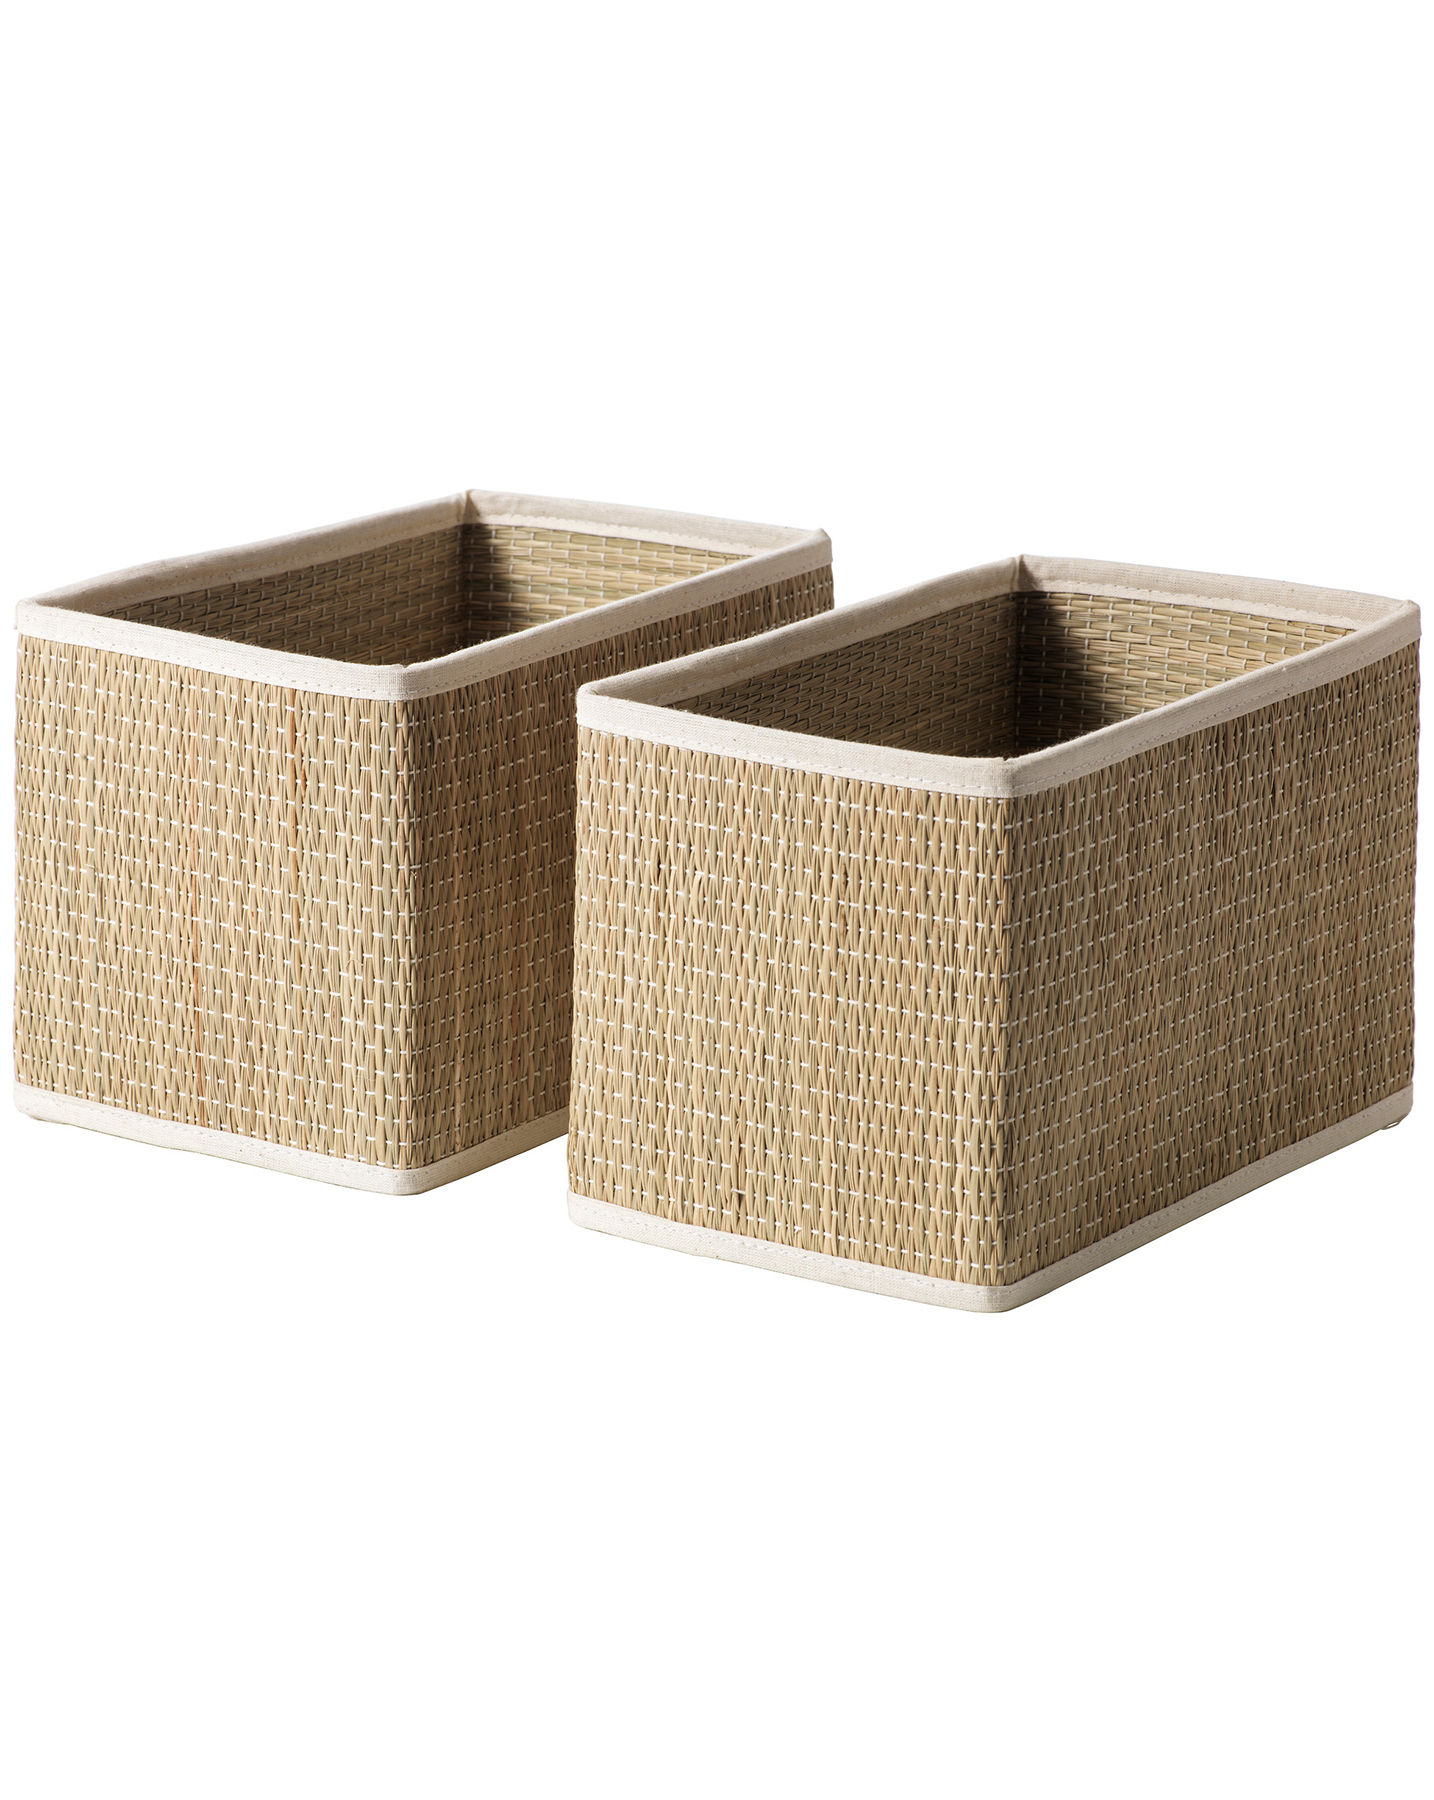 SALNAN Seagrass Basket